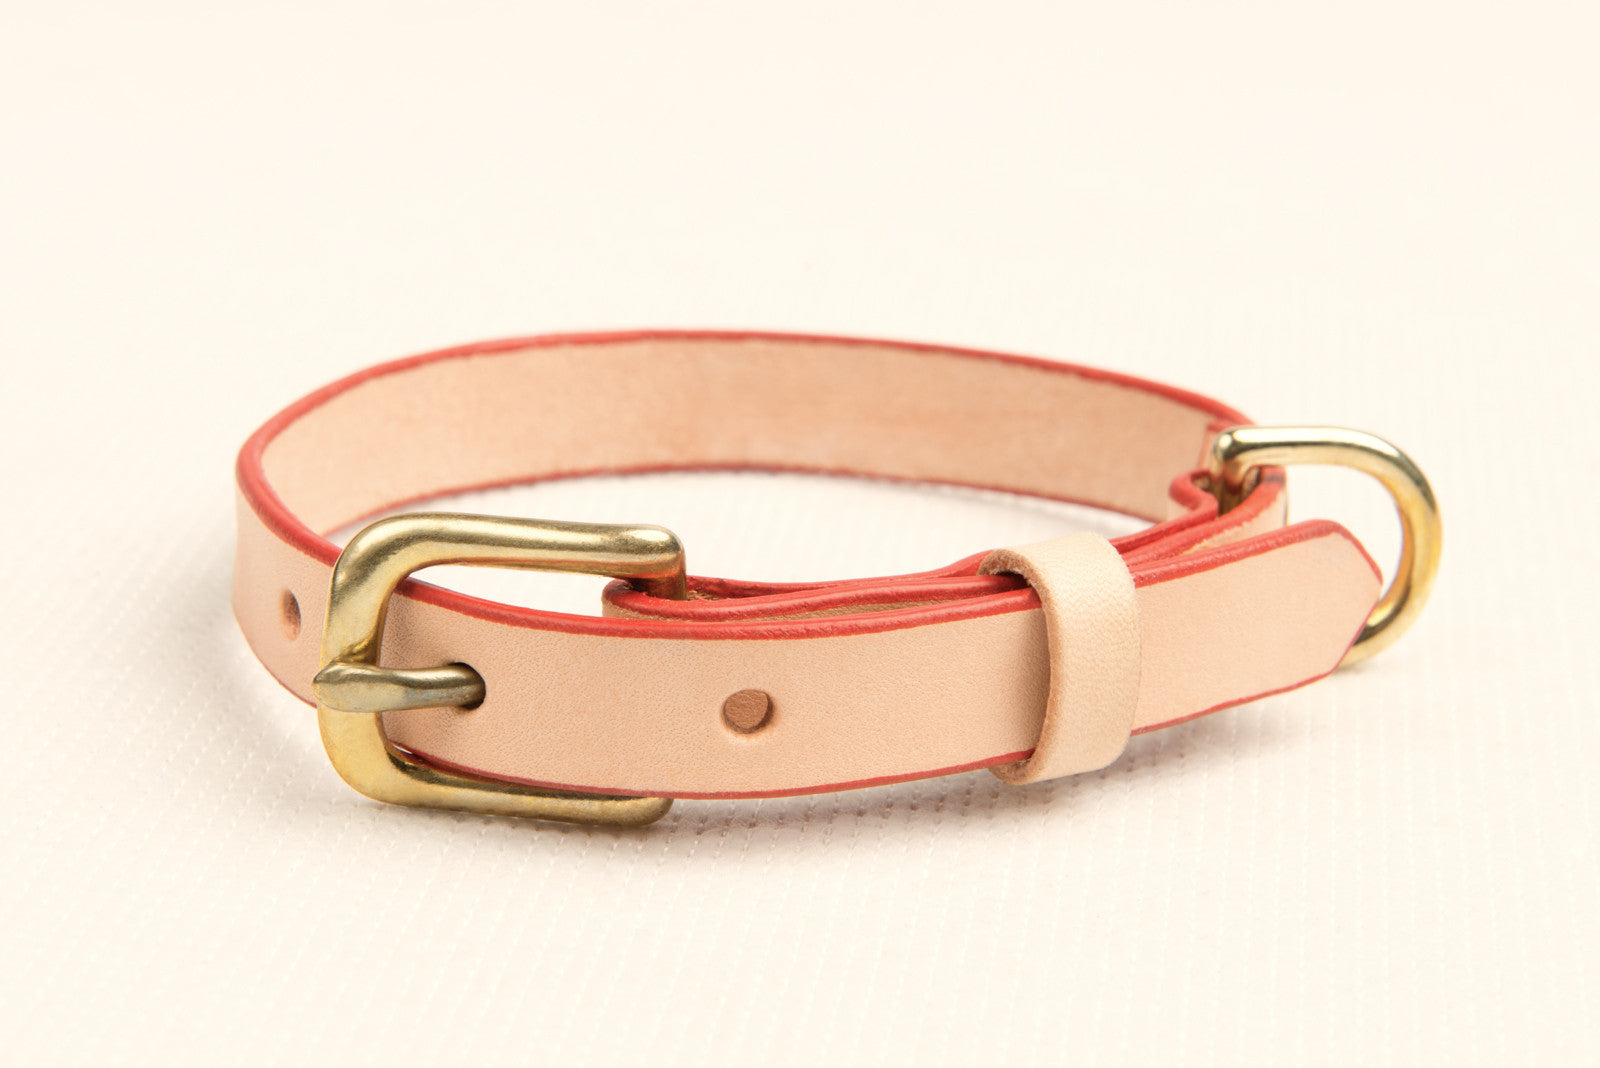 The Classic Collection Collar